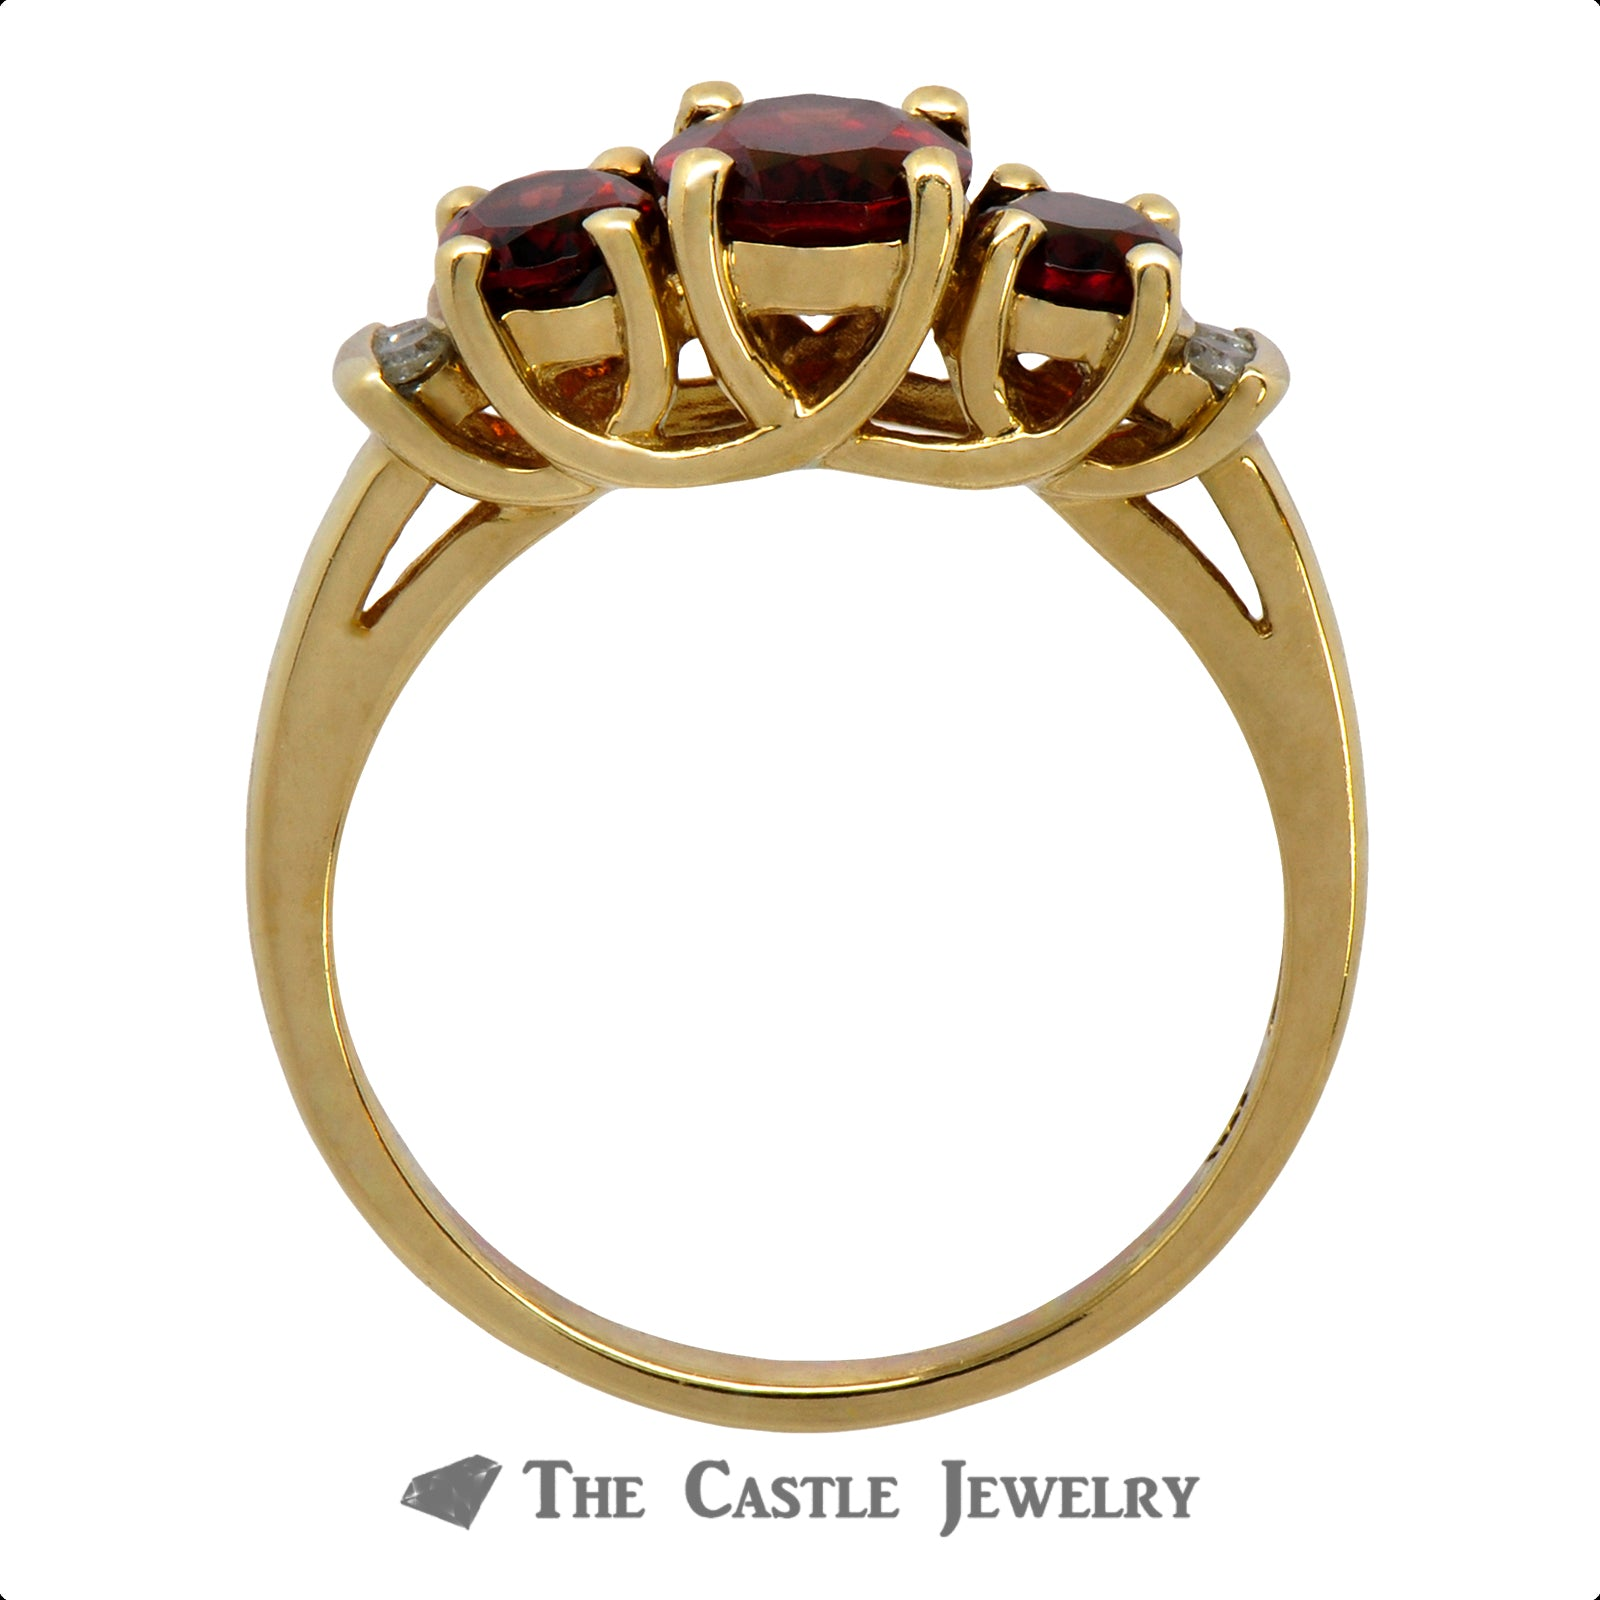 Triple Oval Garnet Ring with Diamond Accents in 10k Yellow Gold-1